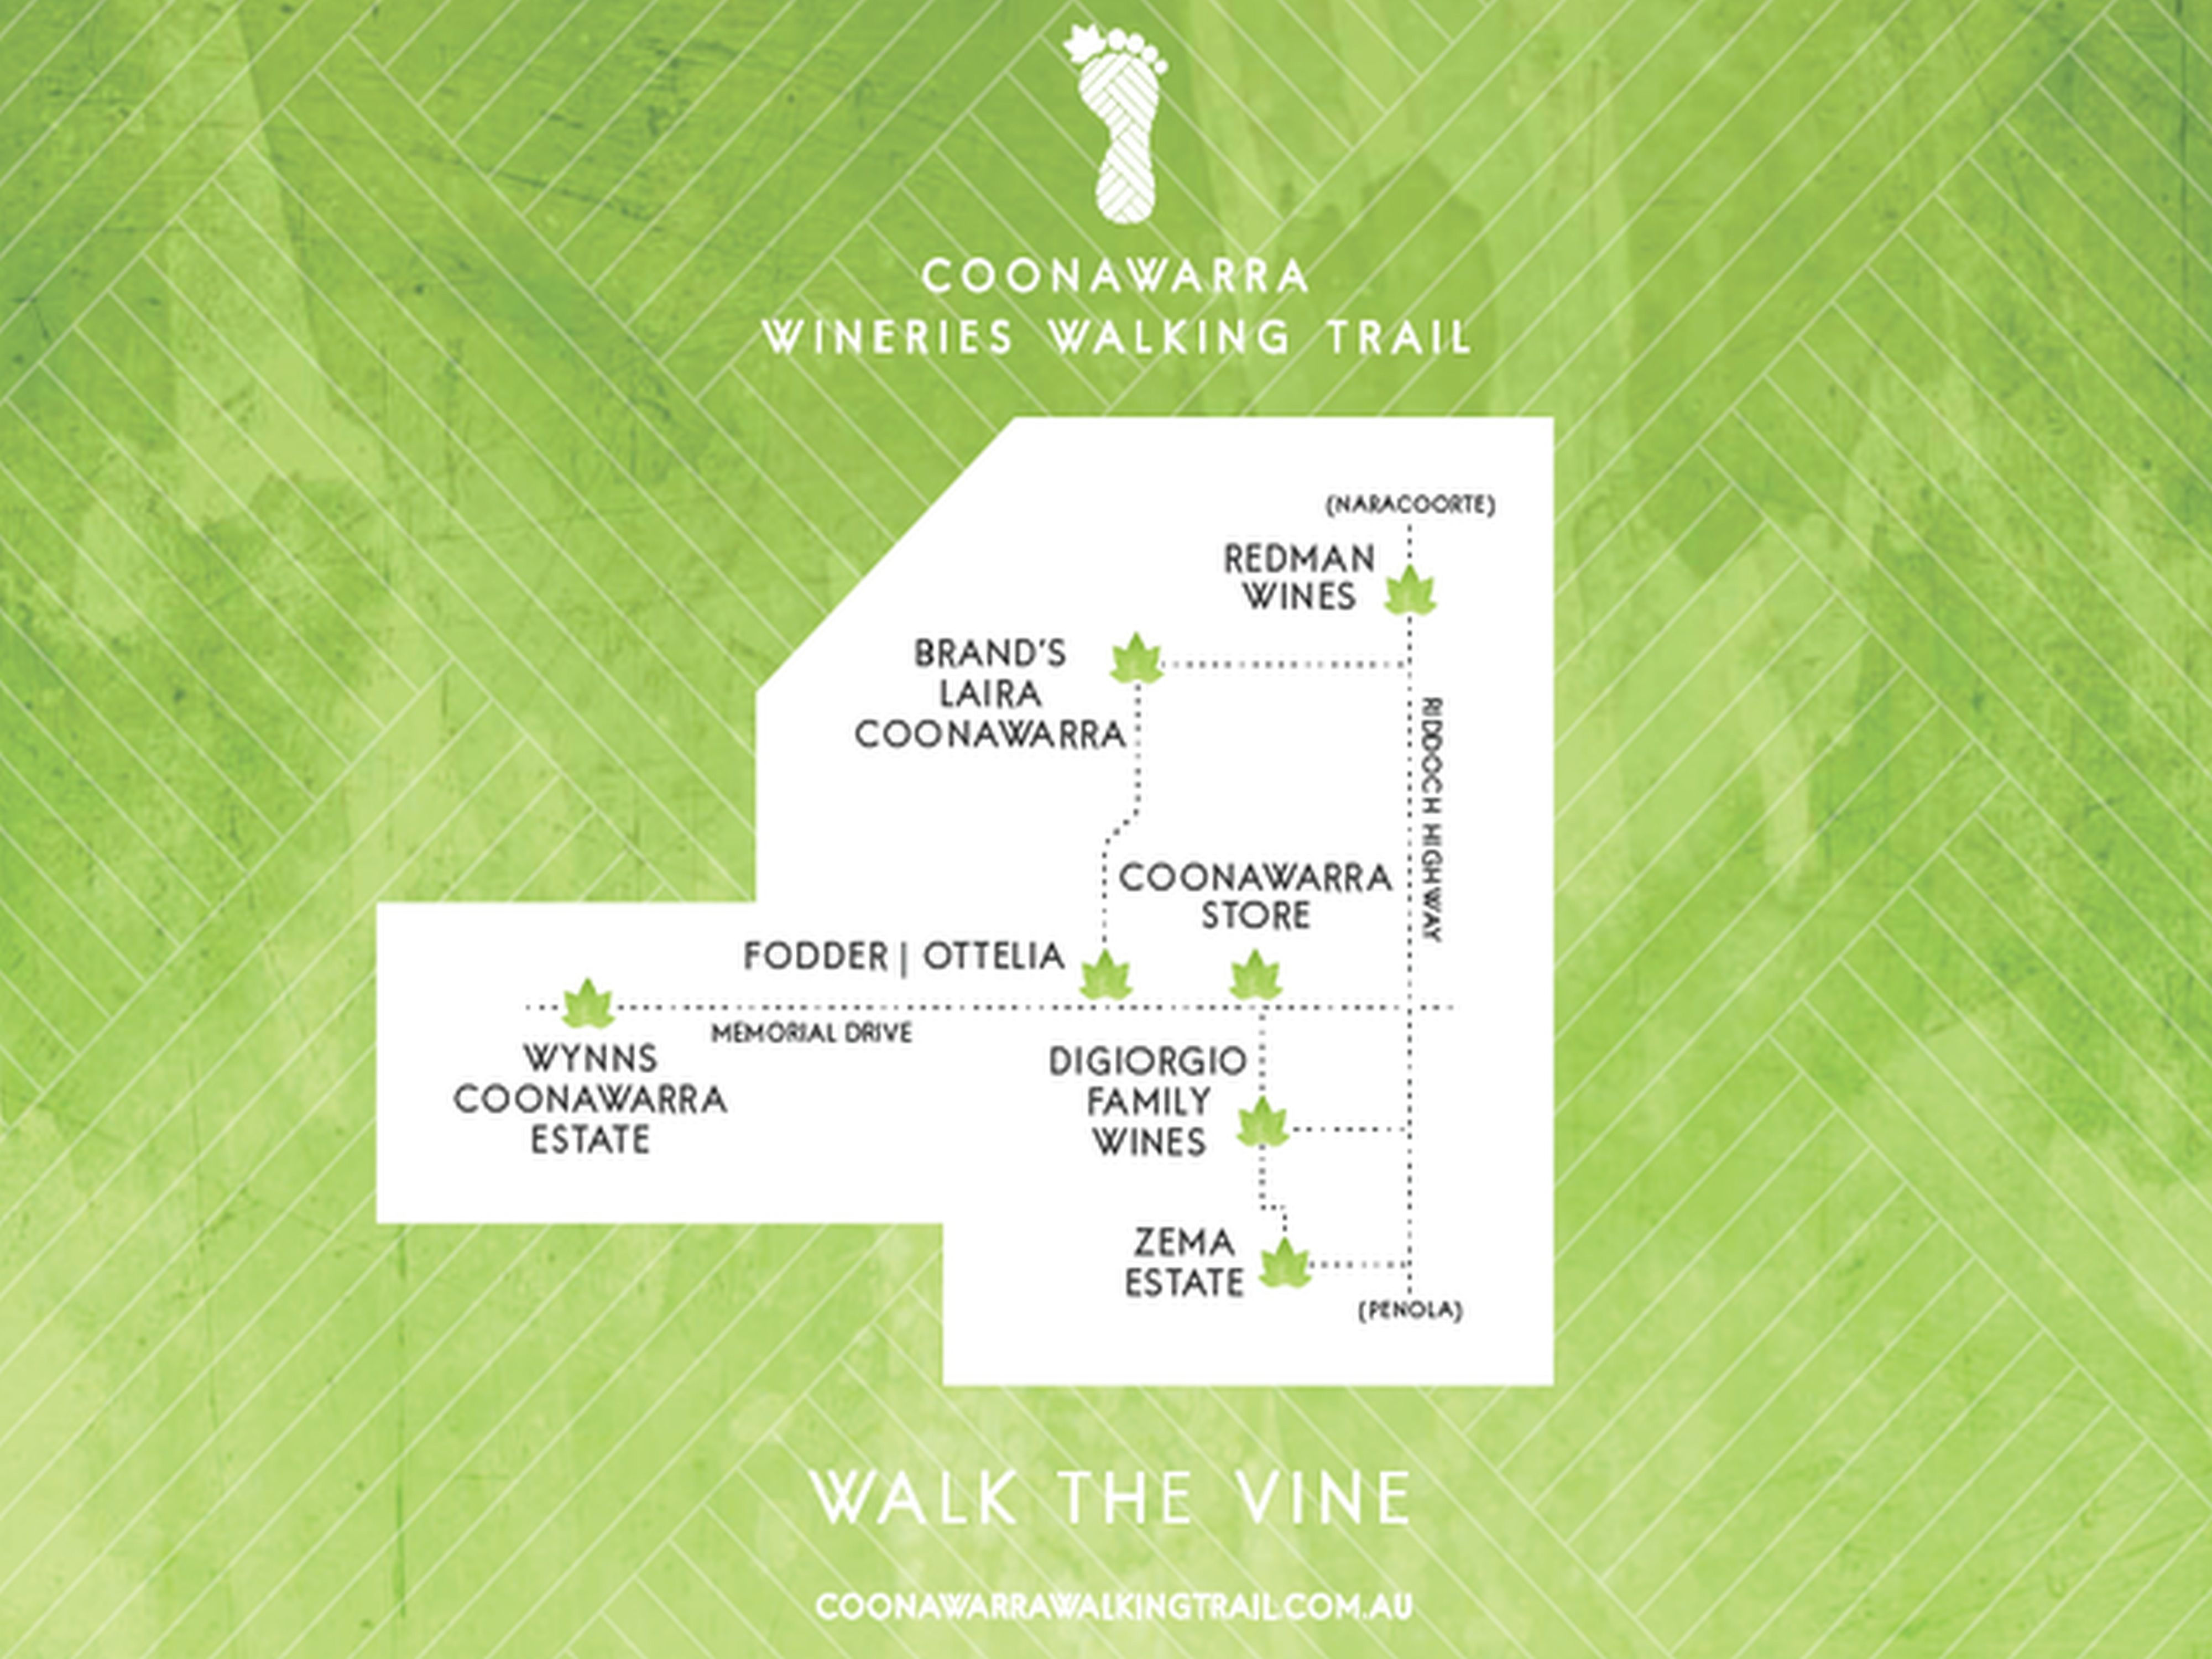 Wineries walking trail map